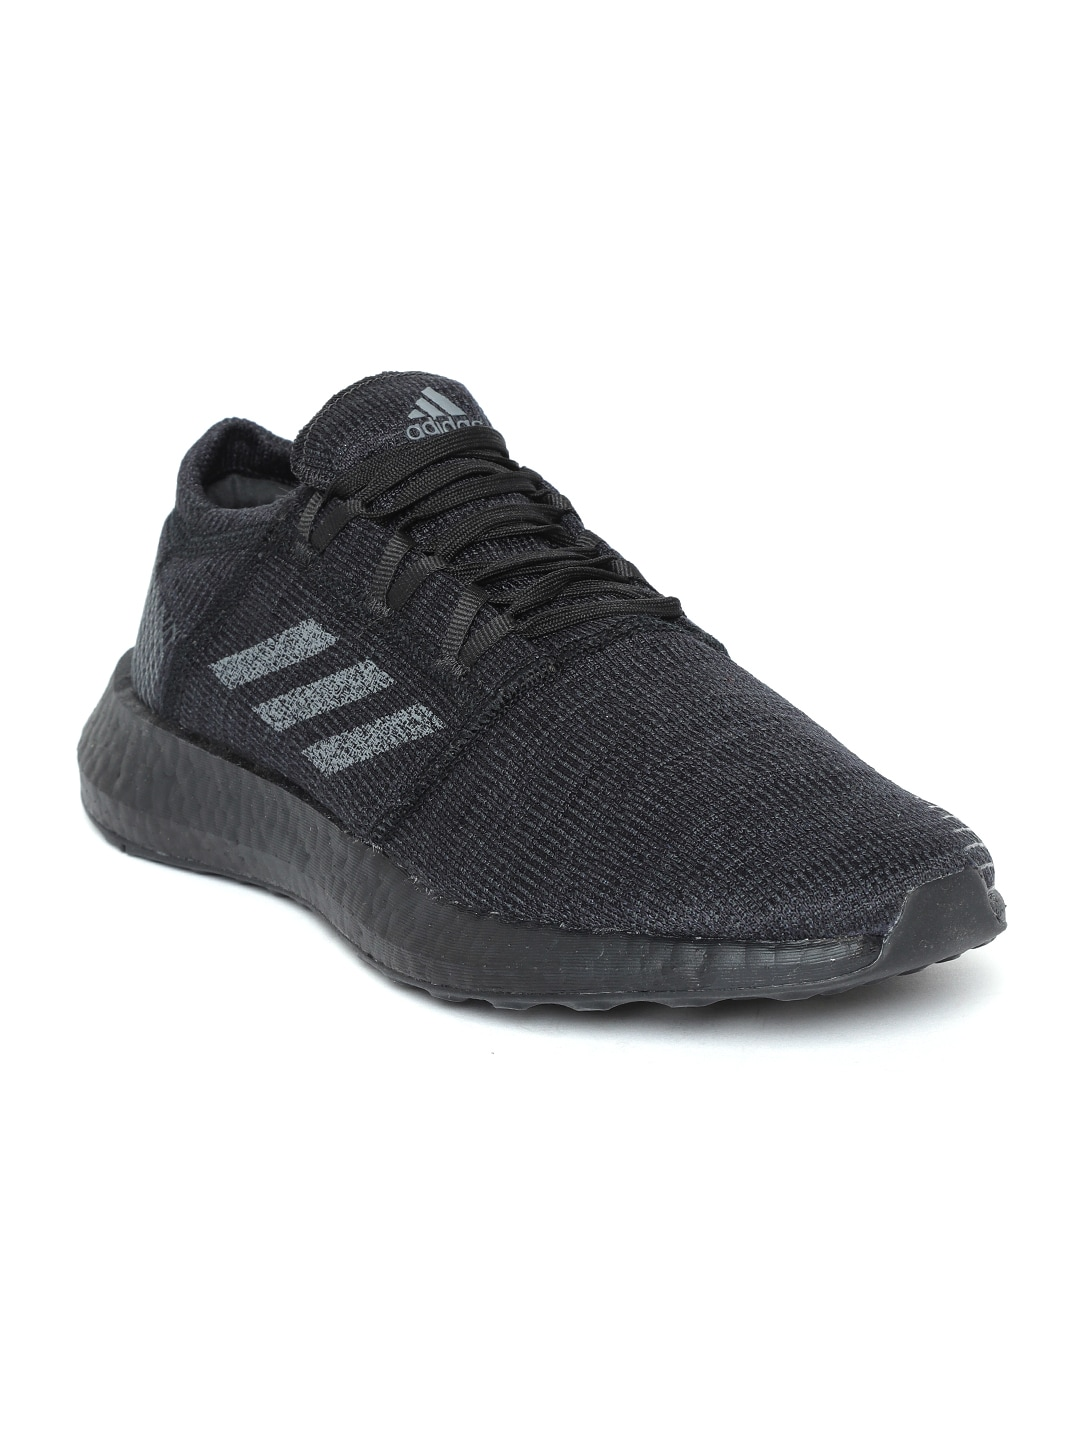 d9dcf5952bc0 Adidas Shoes - Buy Adidas Shoes for Men   Women Online - Myntra